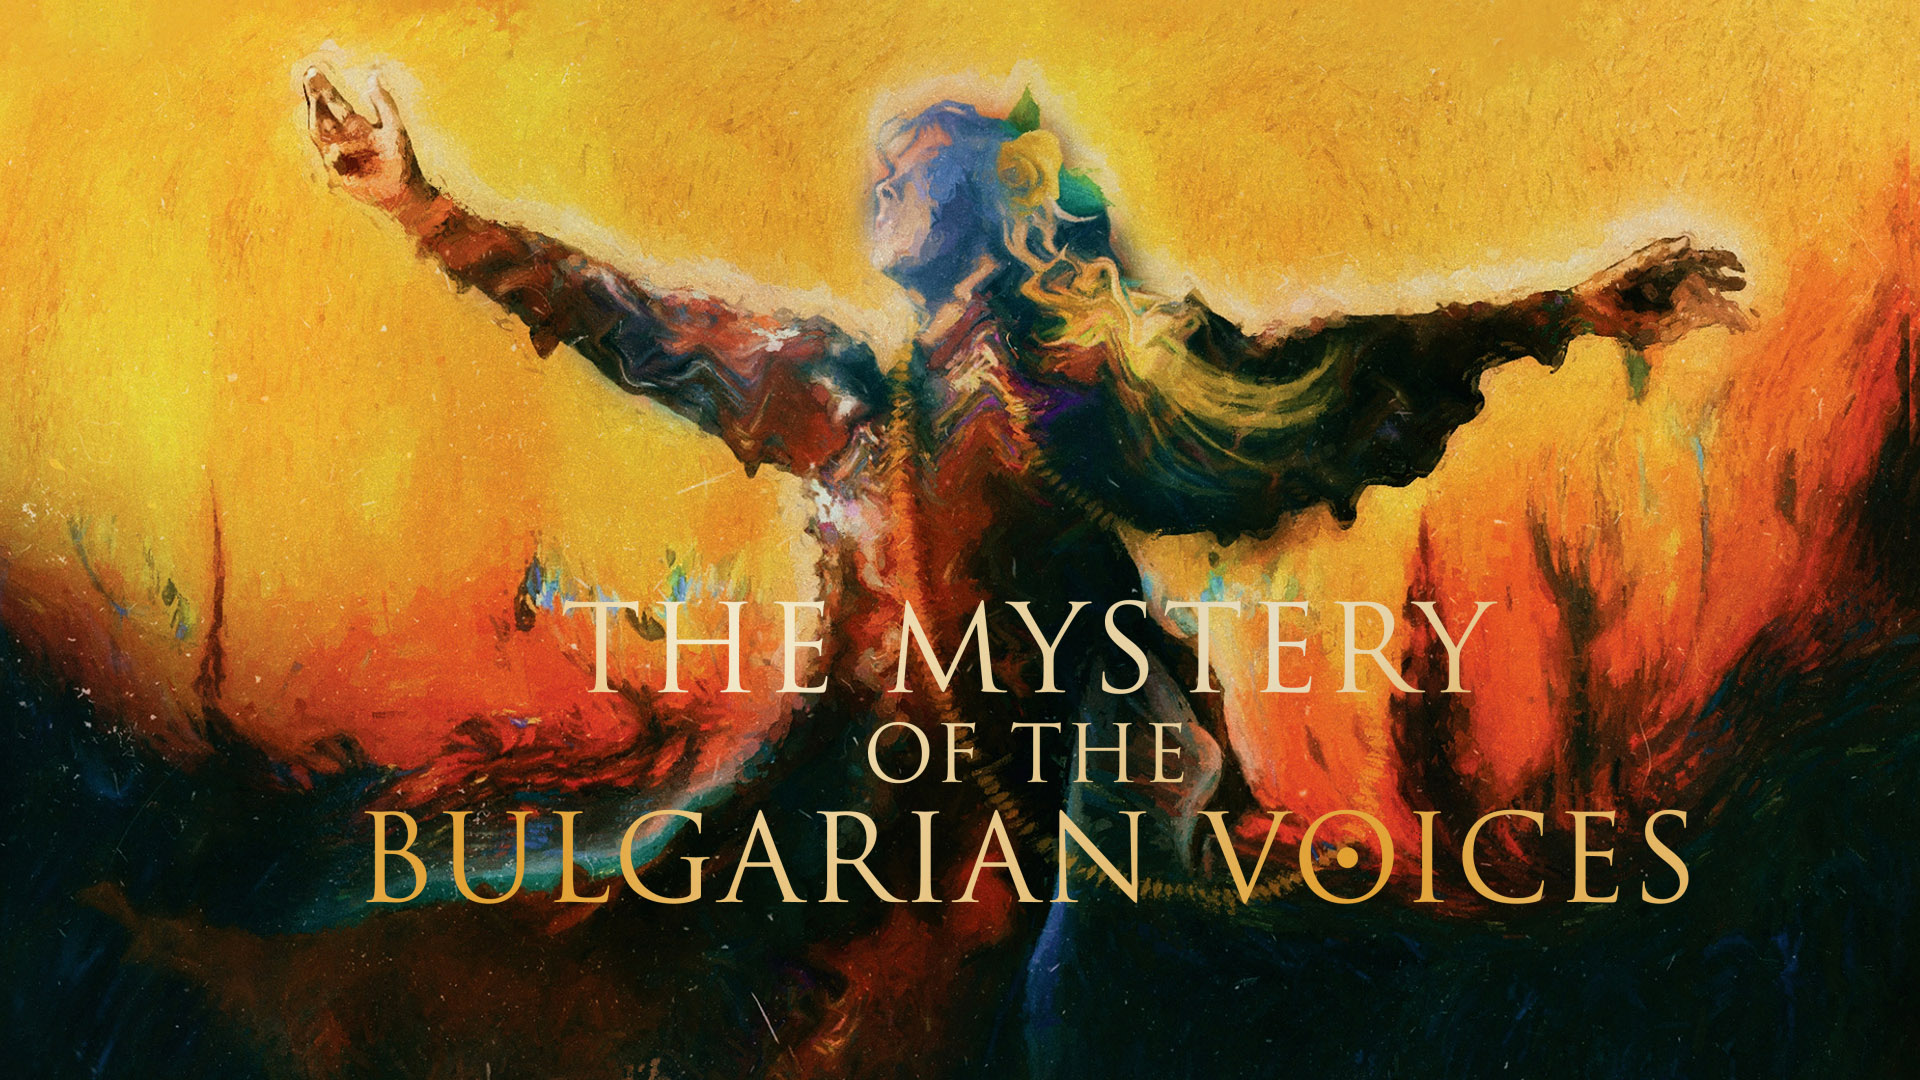 The Mystery of the Bulgarian Voices featuring Lisa Gerrard – E.P.K.